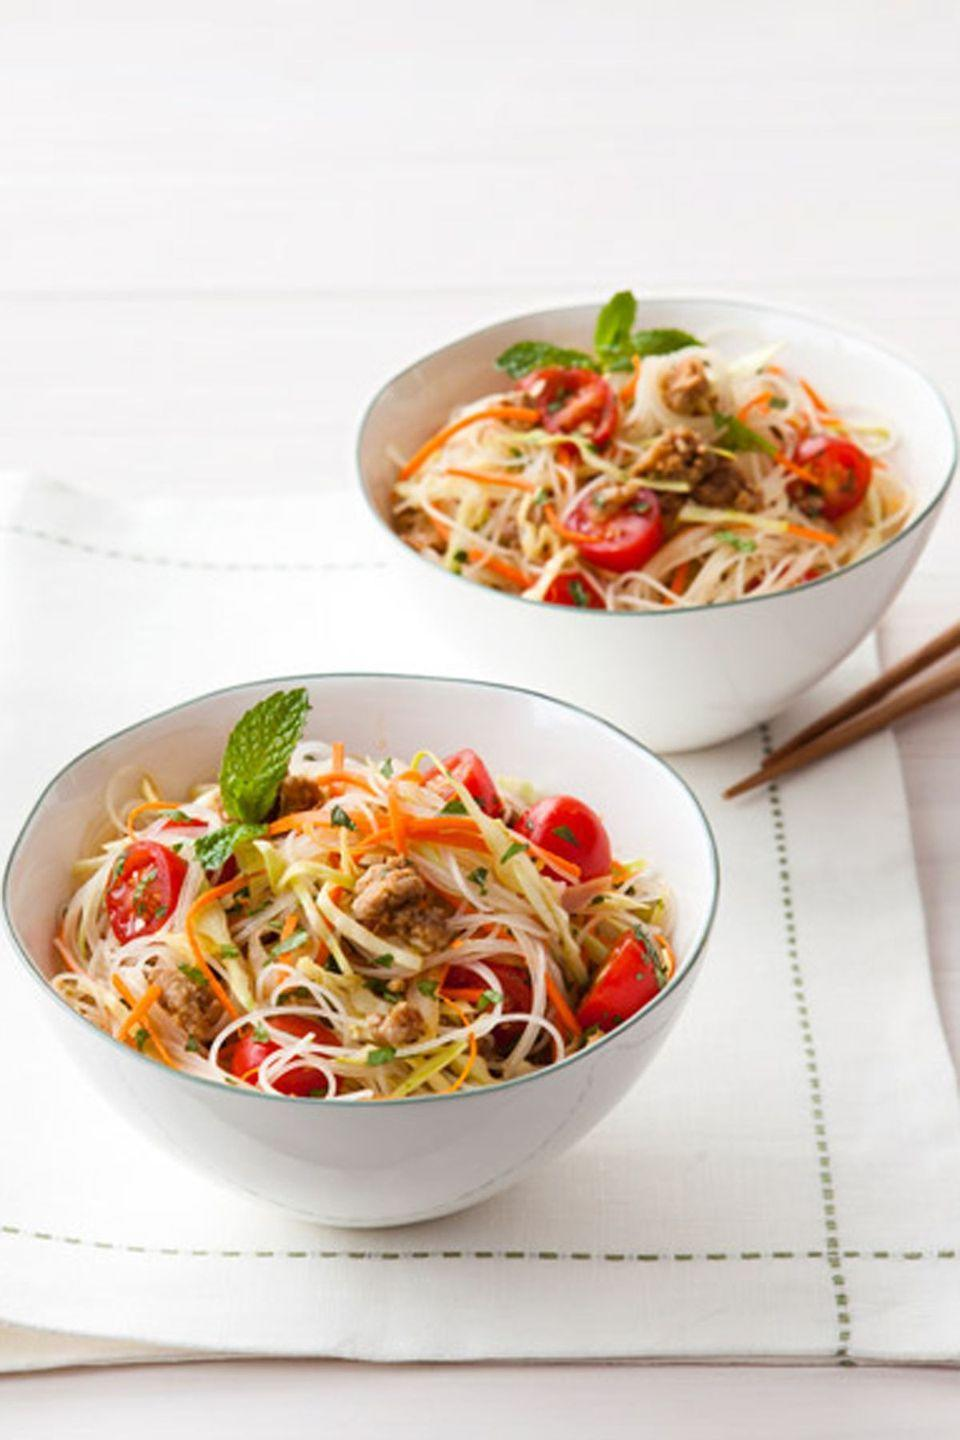 "<p>For those who want a little extra kick to their noodles, this Thai dish serves up just the right amount of flavor.</p><p><em><strong><a href=""https://www.womansday.com/food-recipes/food-drinks/recipes/a39527/spicy-thai-noodle-salad-recipe-ghk0314/"" rel=""nofollow noopener"" target=""_blank"" data-ylk=""slk:Get the Spicy Thai Noodle Salad recipe"" class=""link rapid-noclick-resp"">Get the Spicy Thai Noodle Salad recipe</a>.</strong></em></p>"